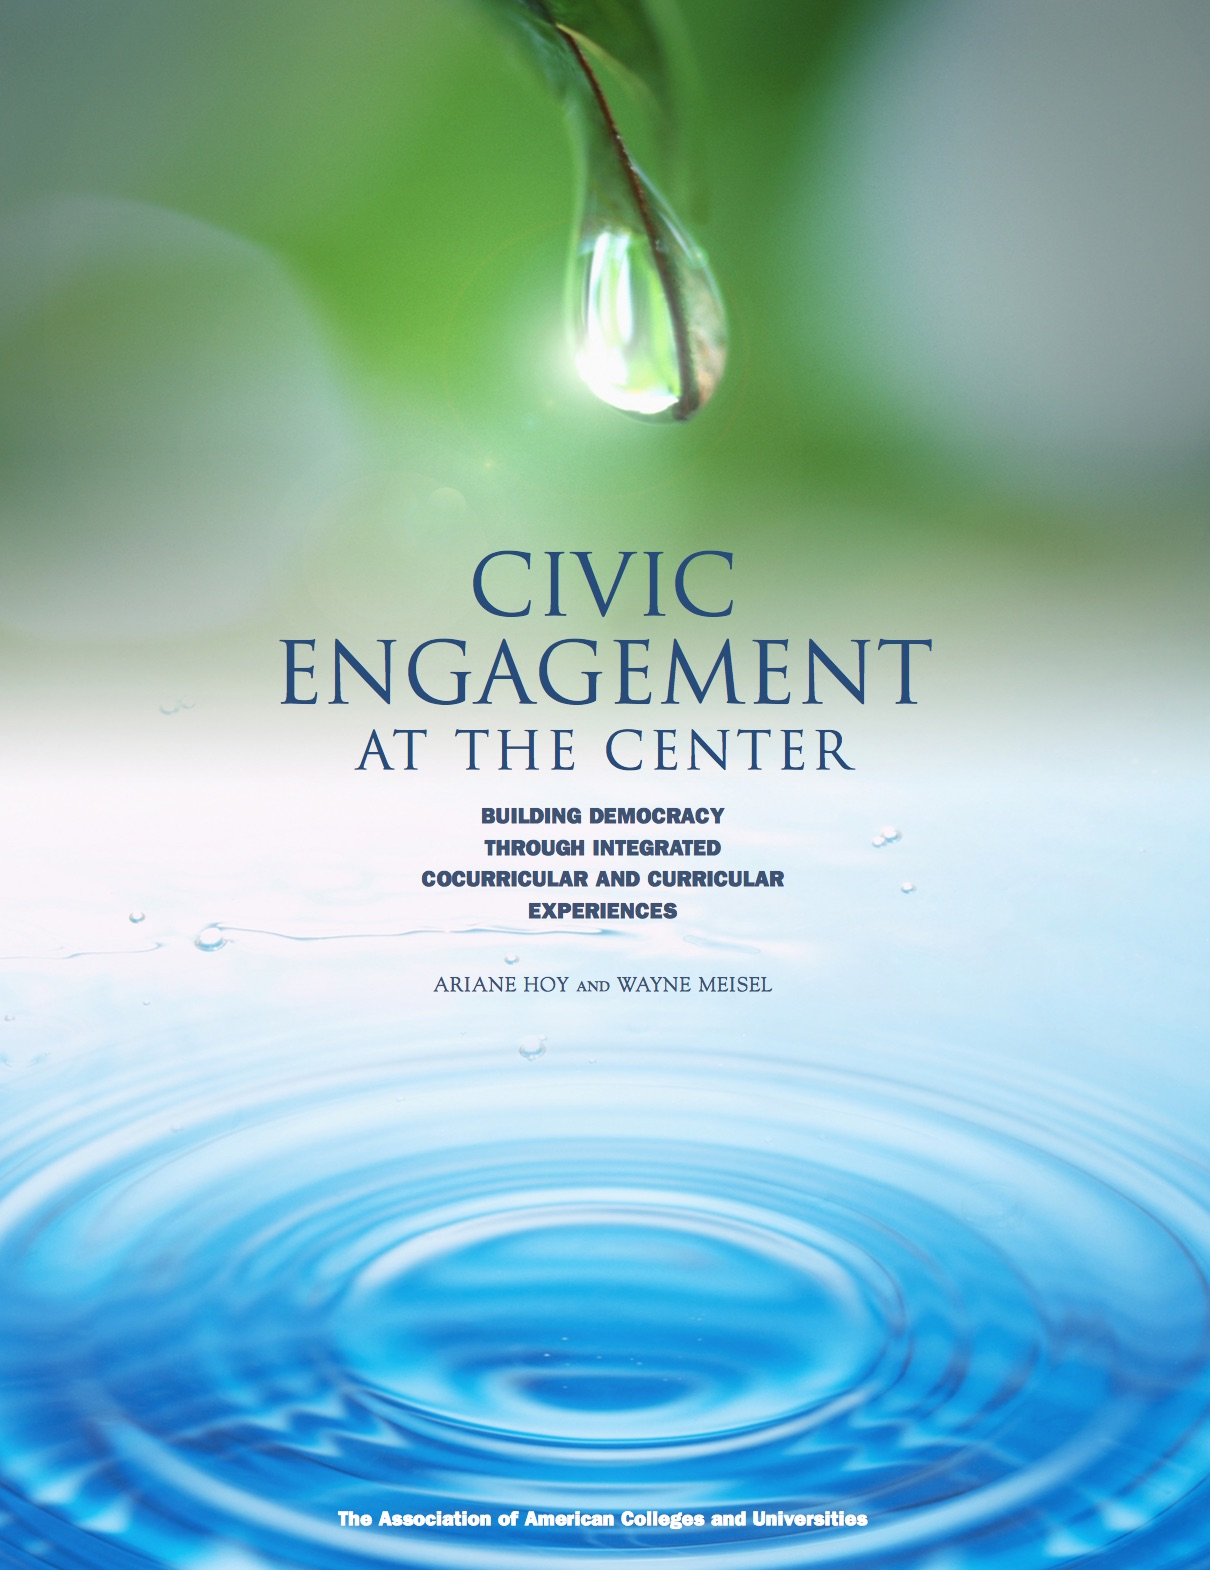 civicenagement_at_the_center.jpg